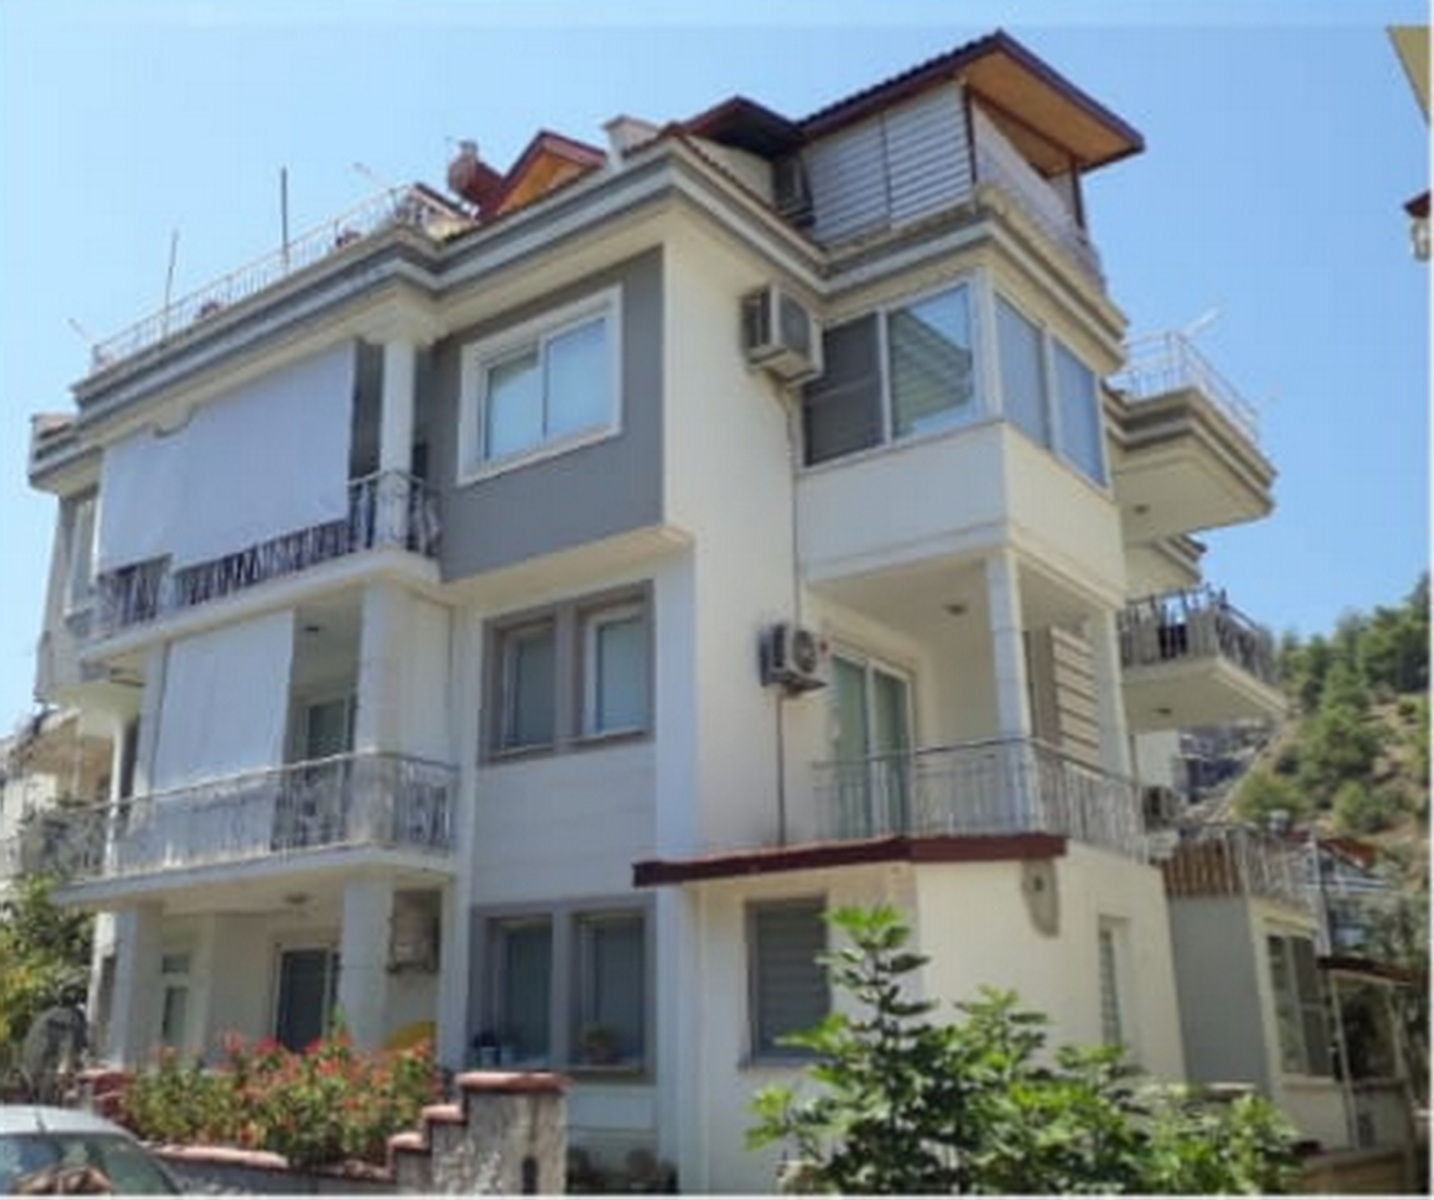 Great Price for 3 Bedroom Duplex Apartment in Fethiye Town